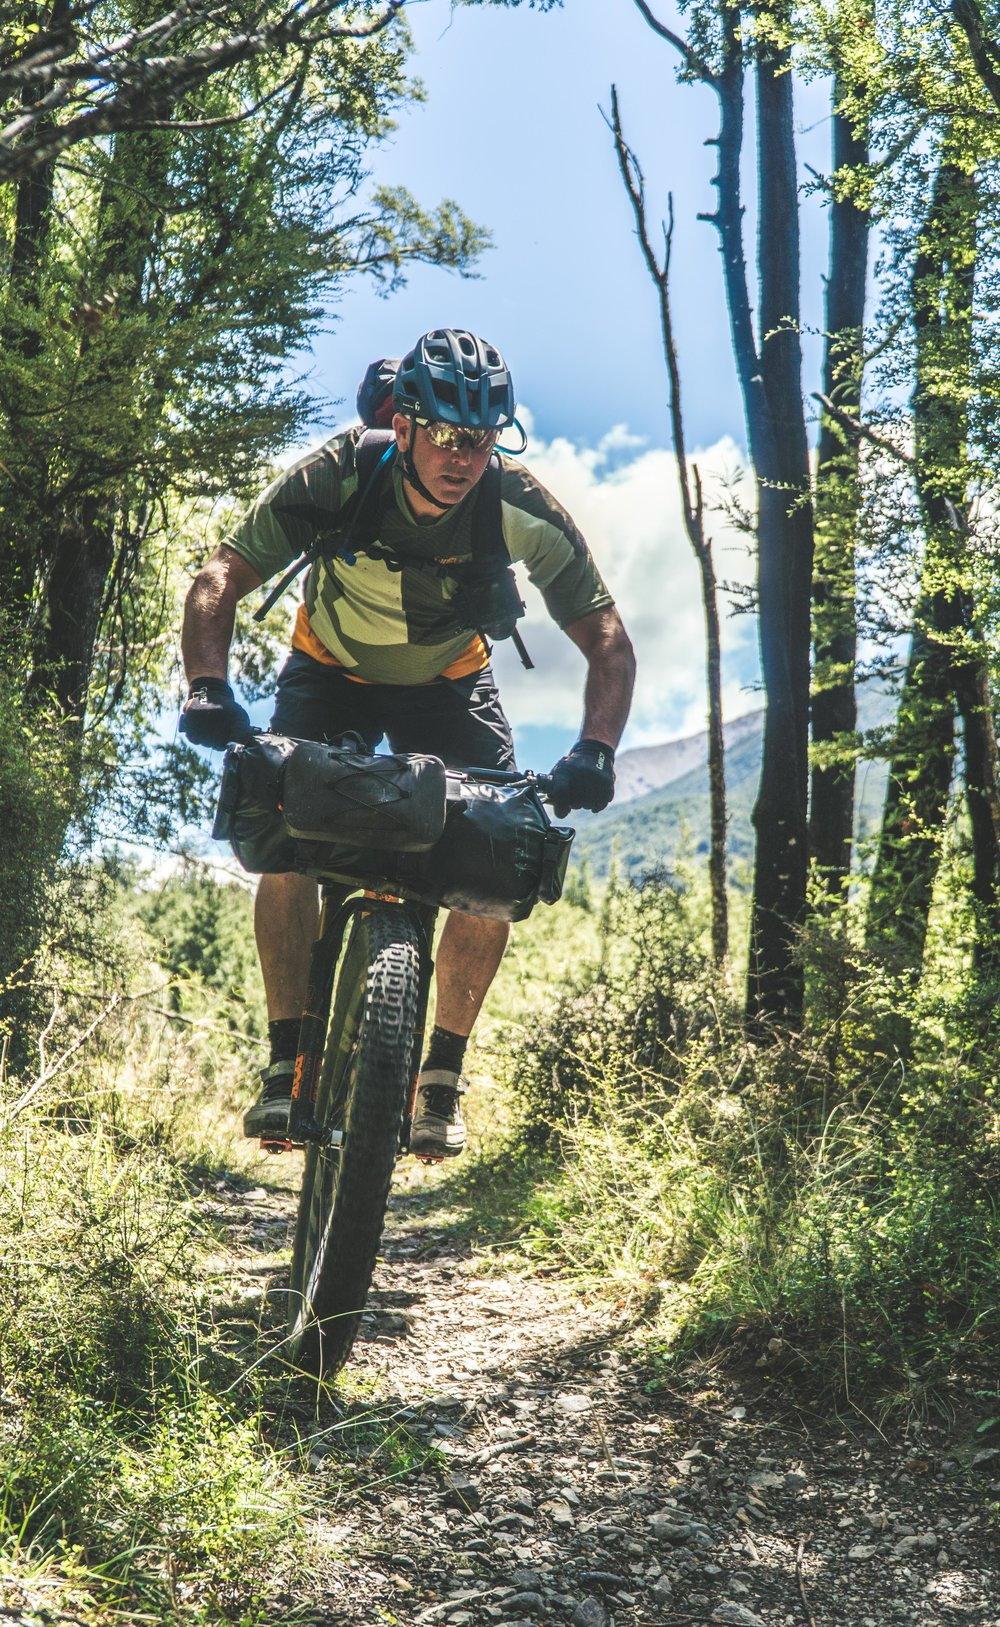 """Carrying packrafts, paddling gear and multi day equipment will be challenging on the almost 200km of technical singletrack """